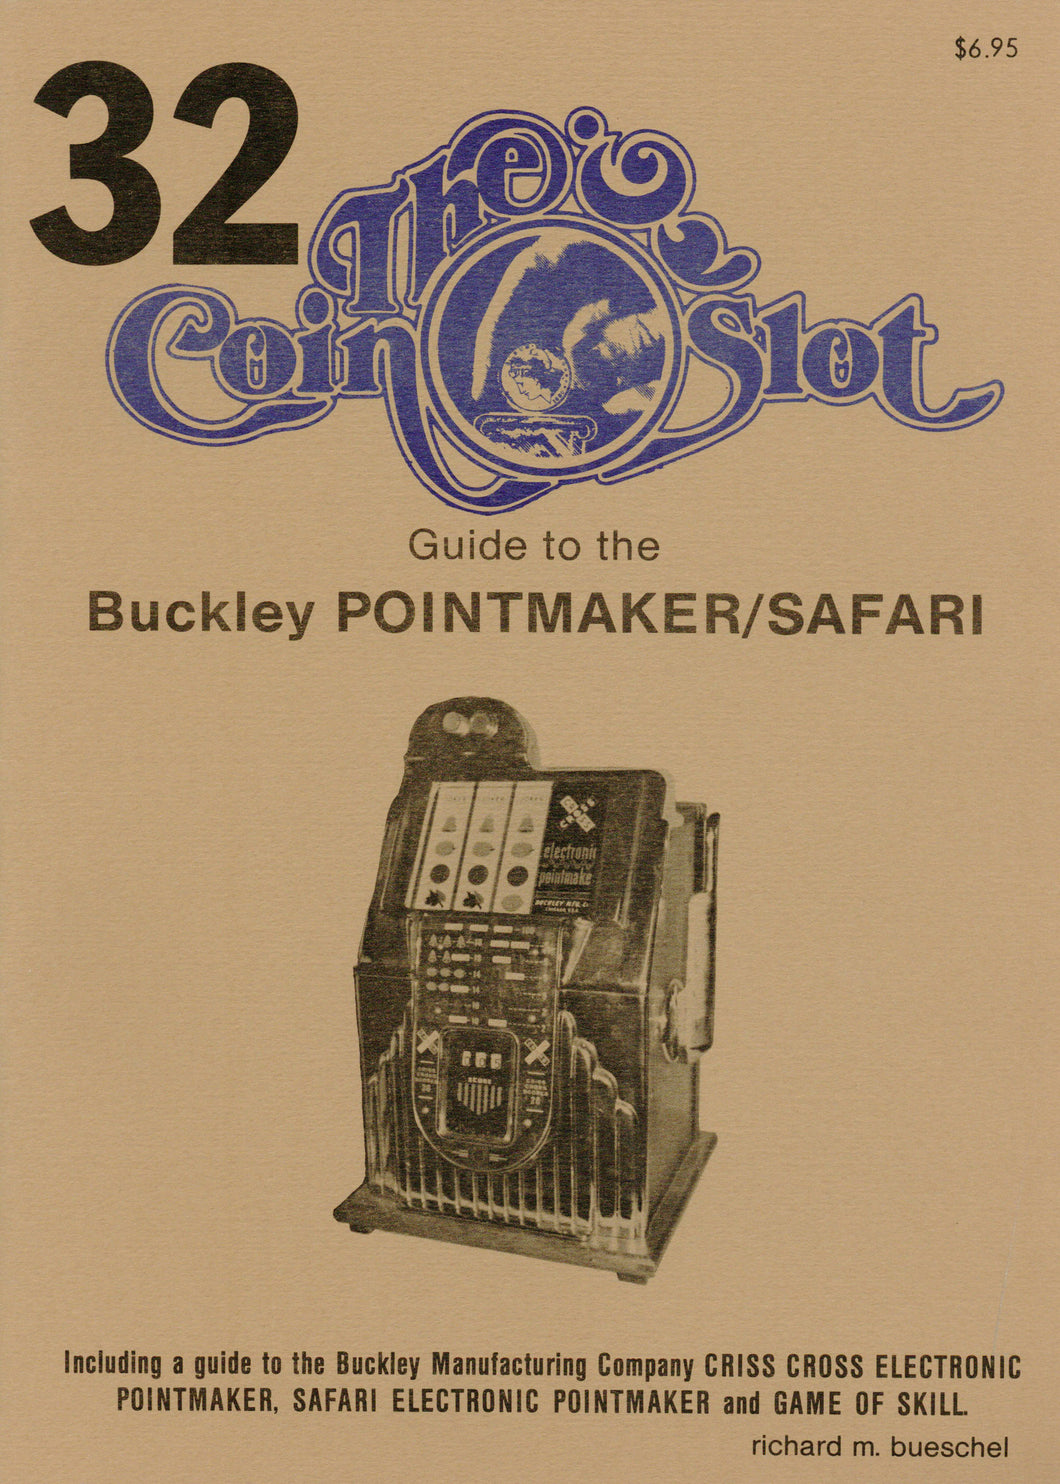 Coin Slot #32. Guide to the Buckley Pointmaker/Safari